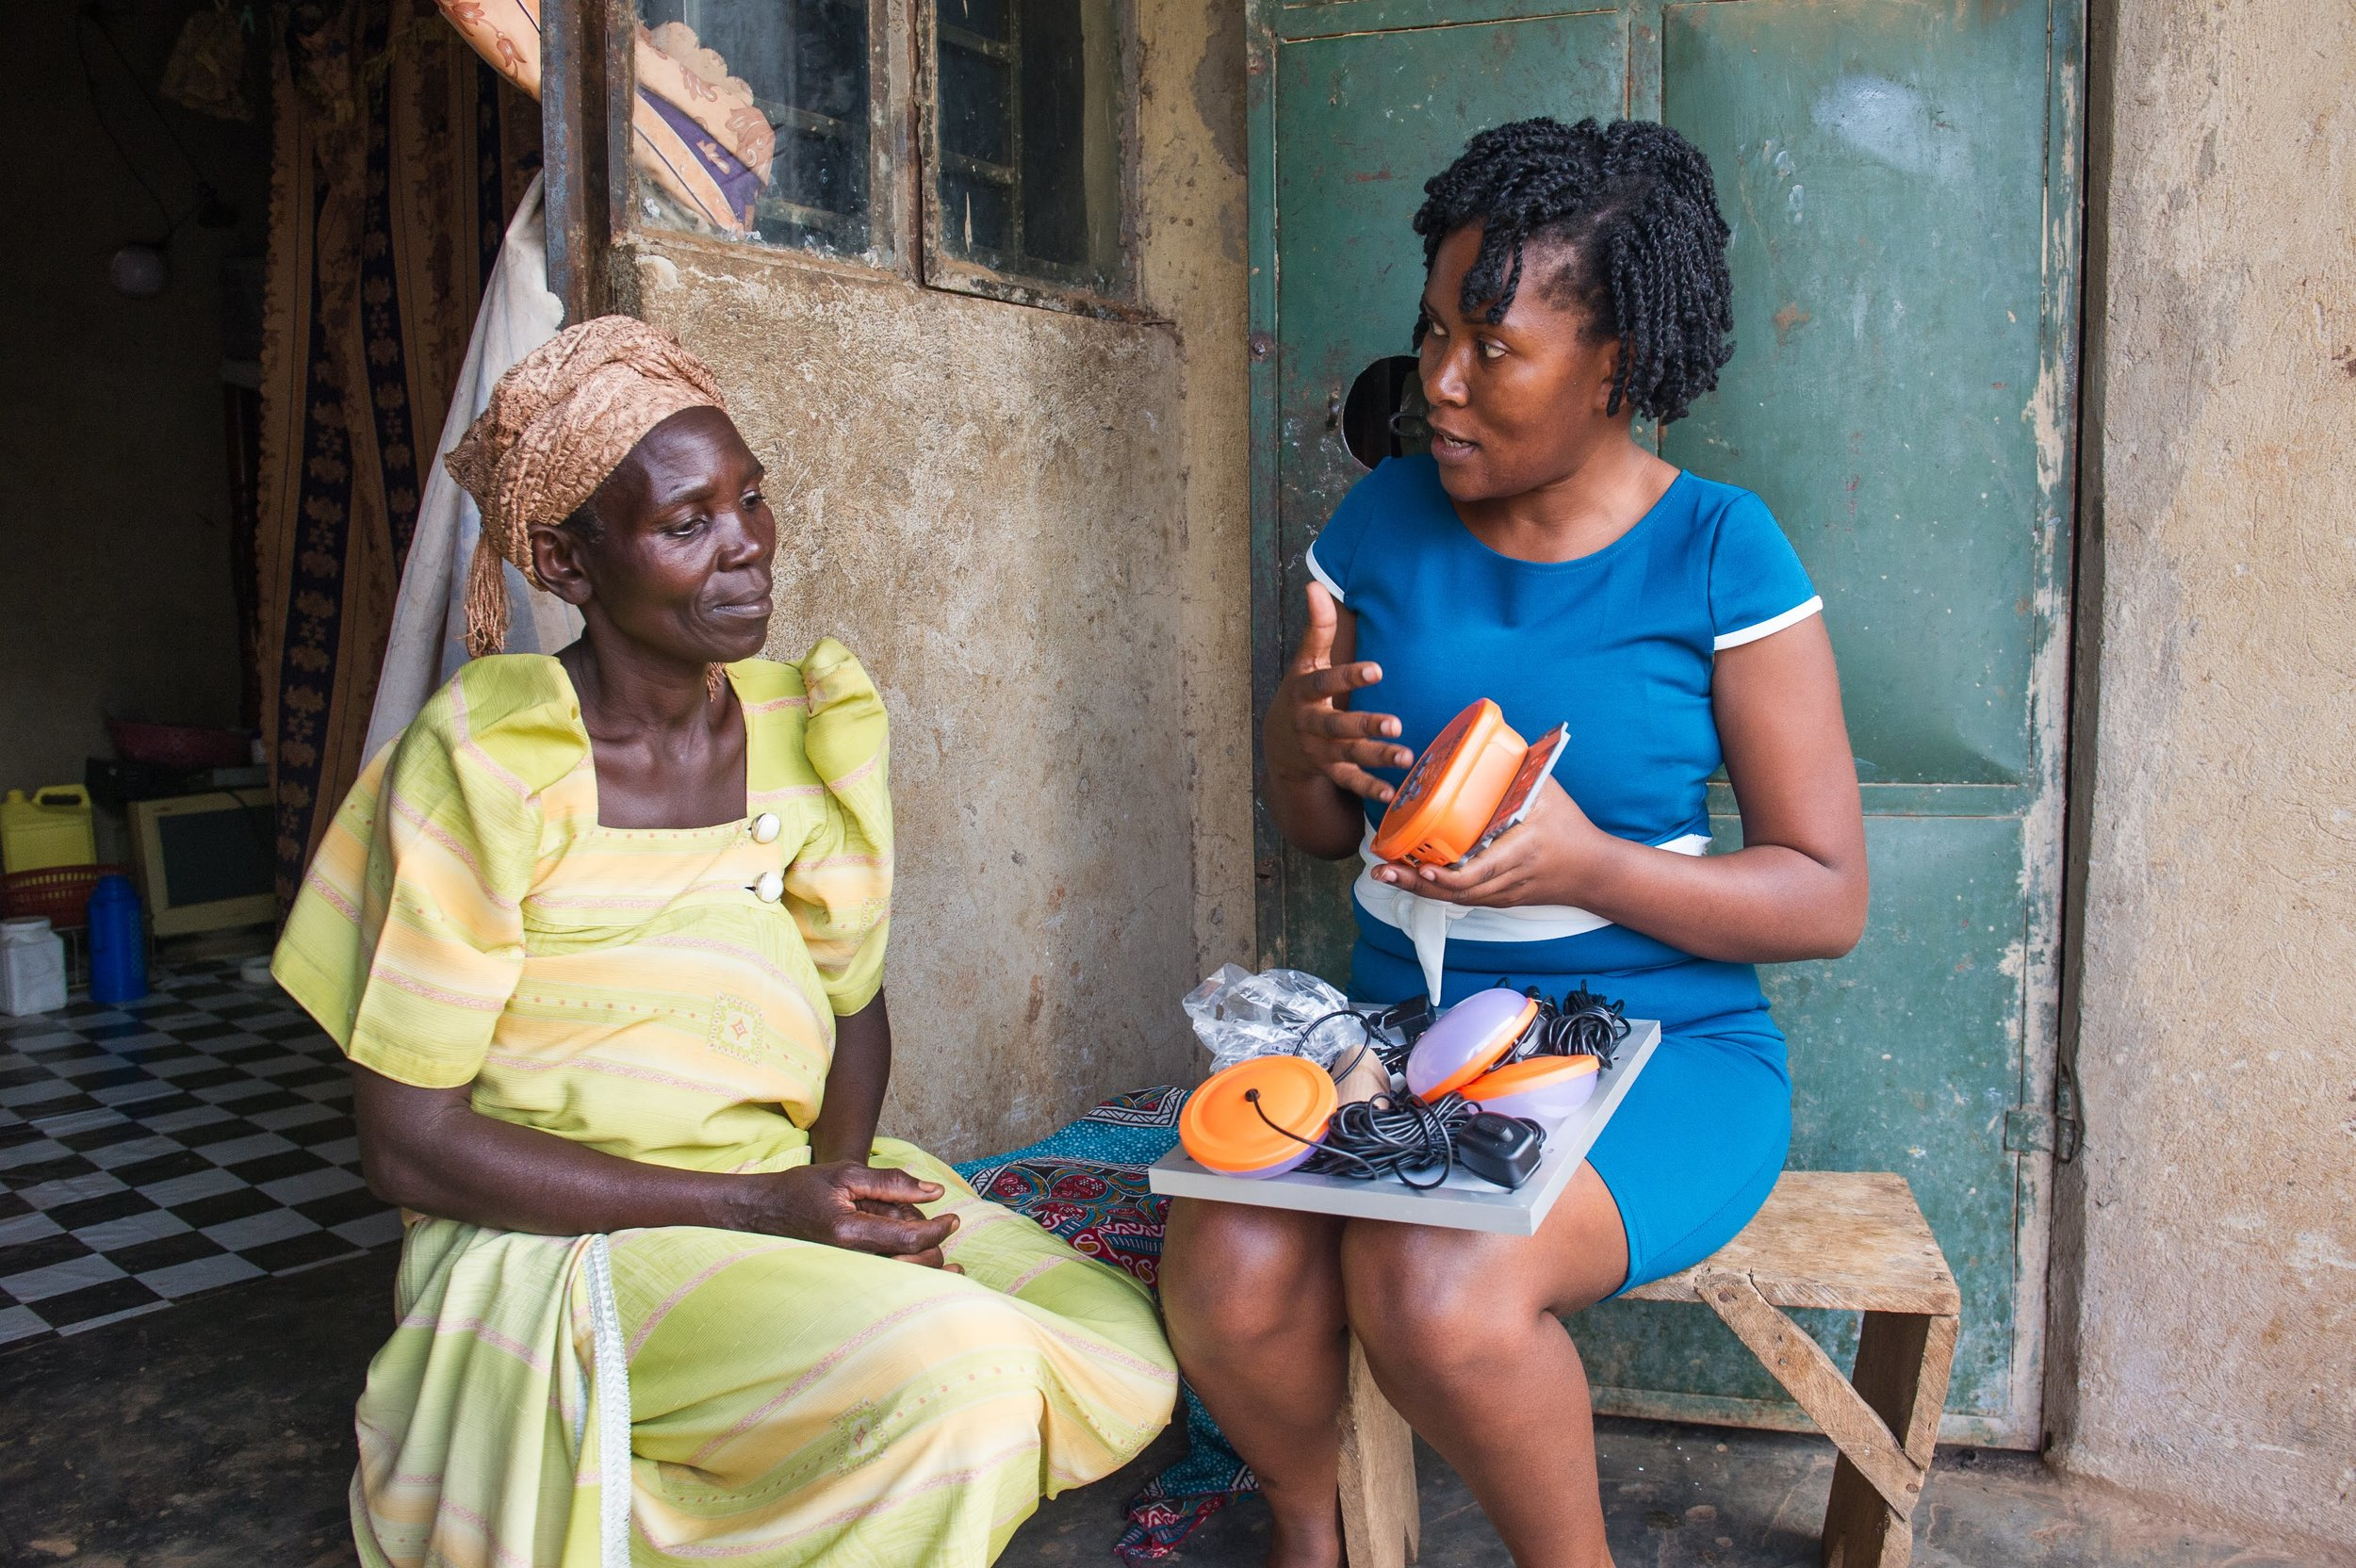 Jane Namusisi, a 54-year-old Ugandan woman, meets with BrightLife field supervisor, Brenda Nansasi, to discuss installation of a new solar home system. Photo credit: Dawn Deeks